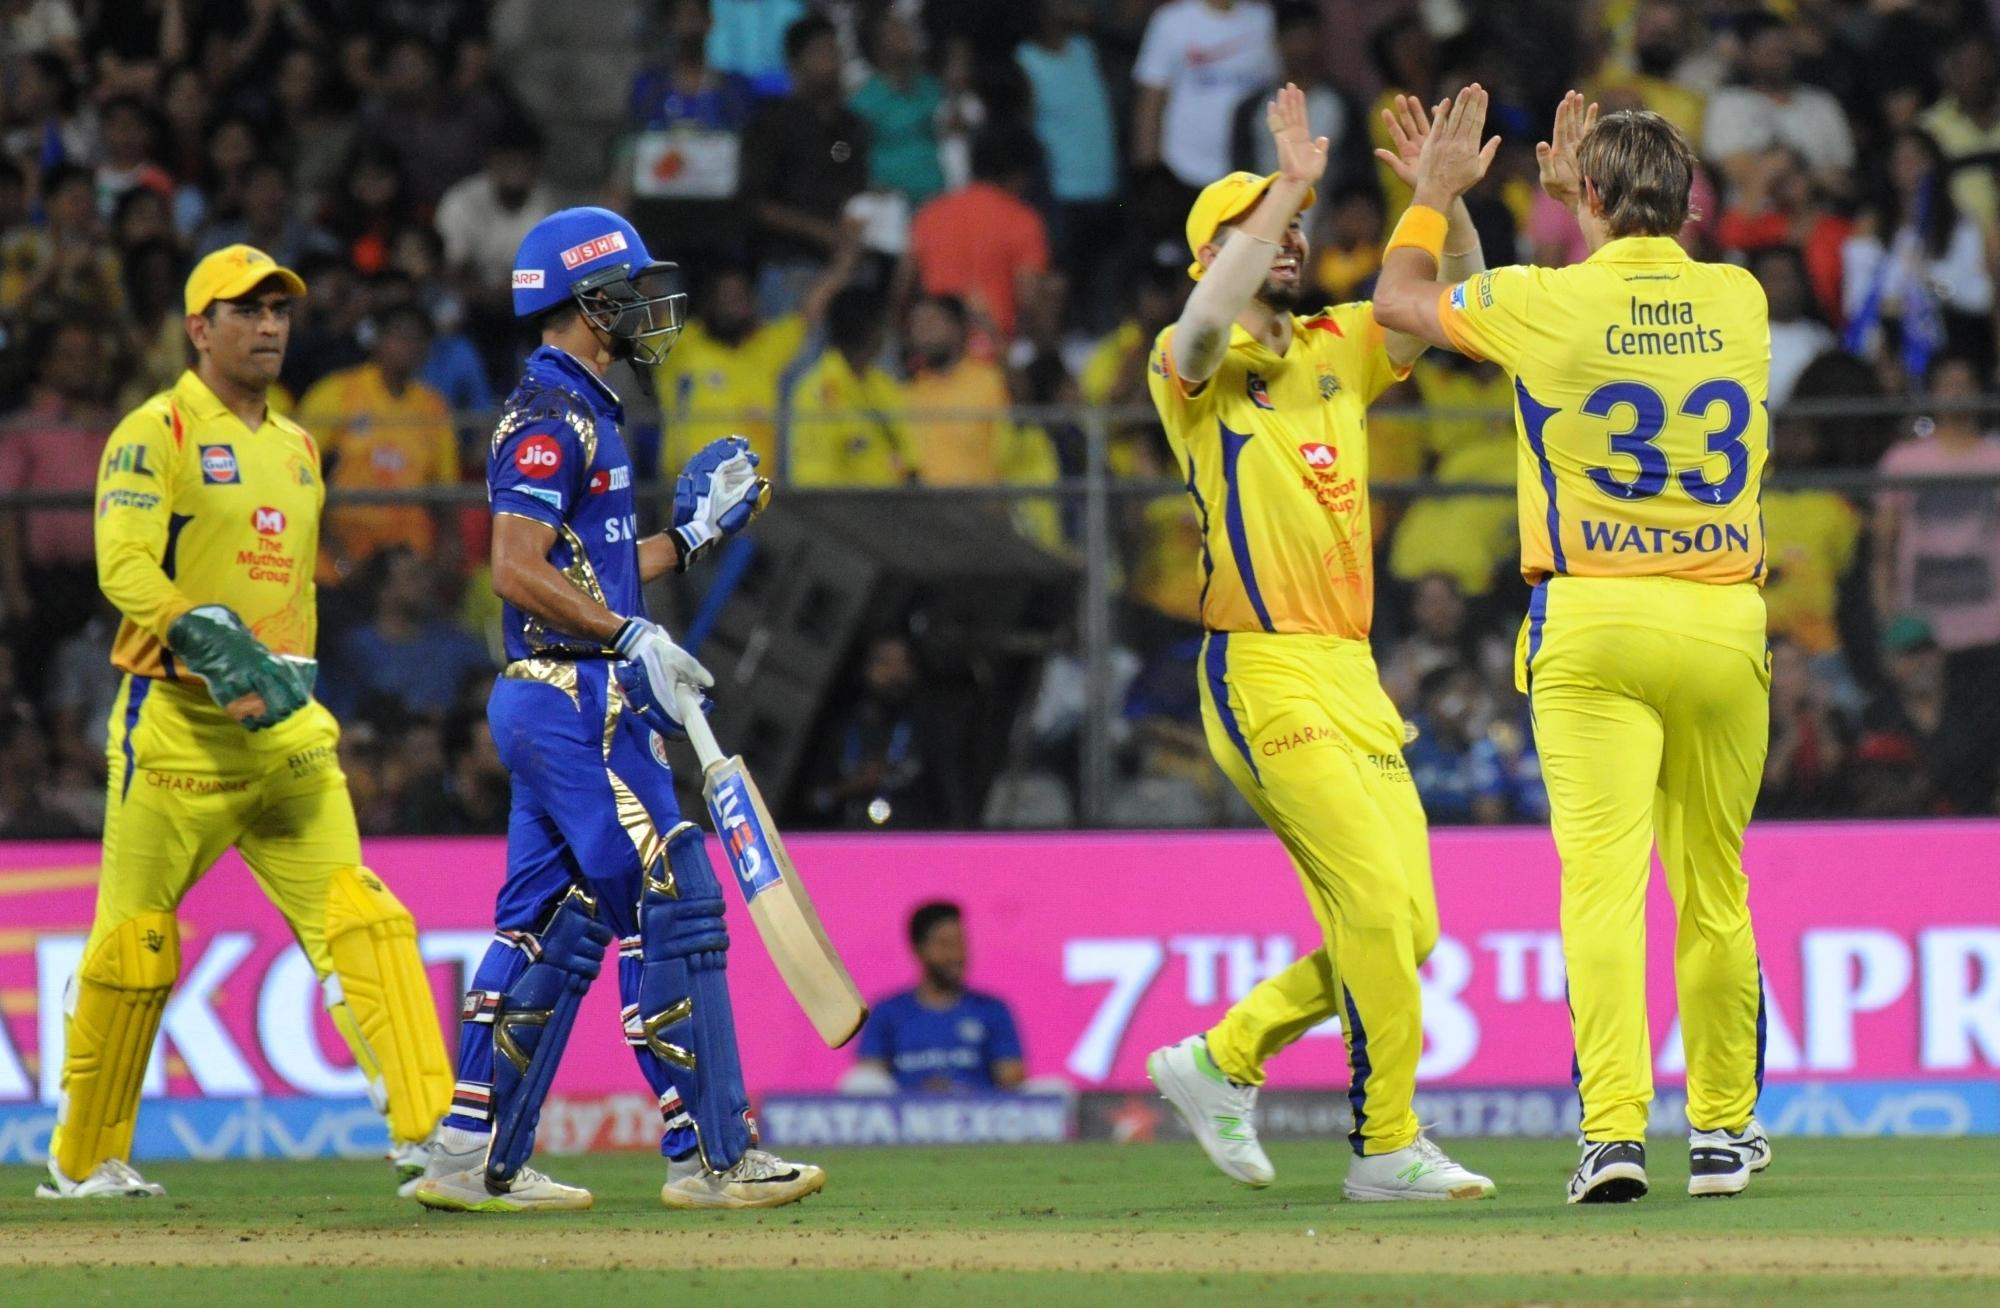 """IPL 2020 remains suspended """"until further notice"""" due to COVID-19 pandemic 